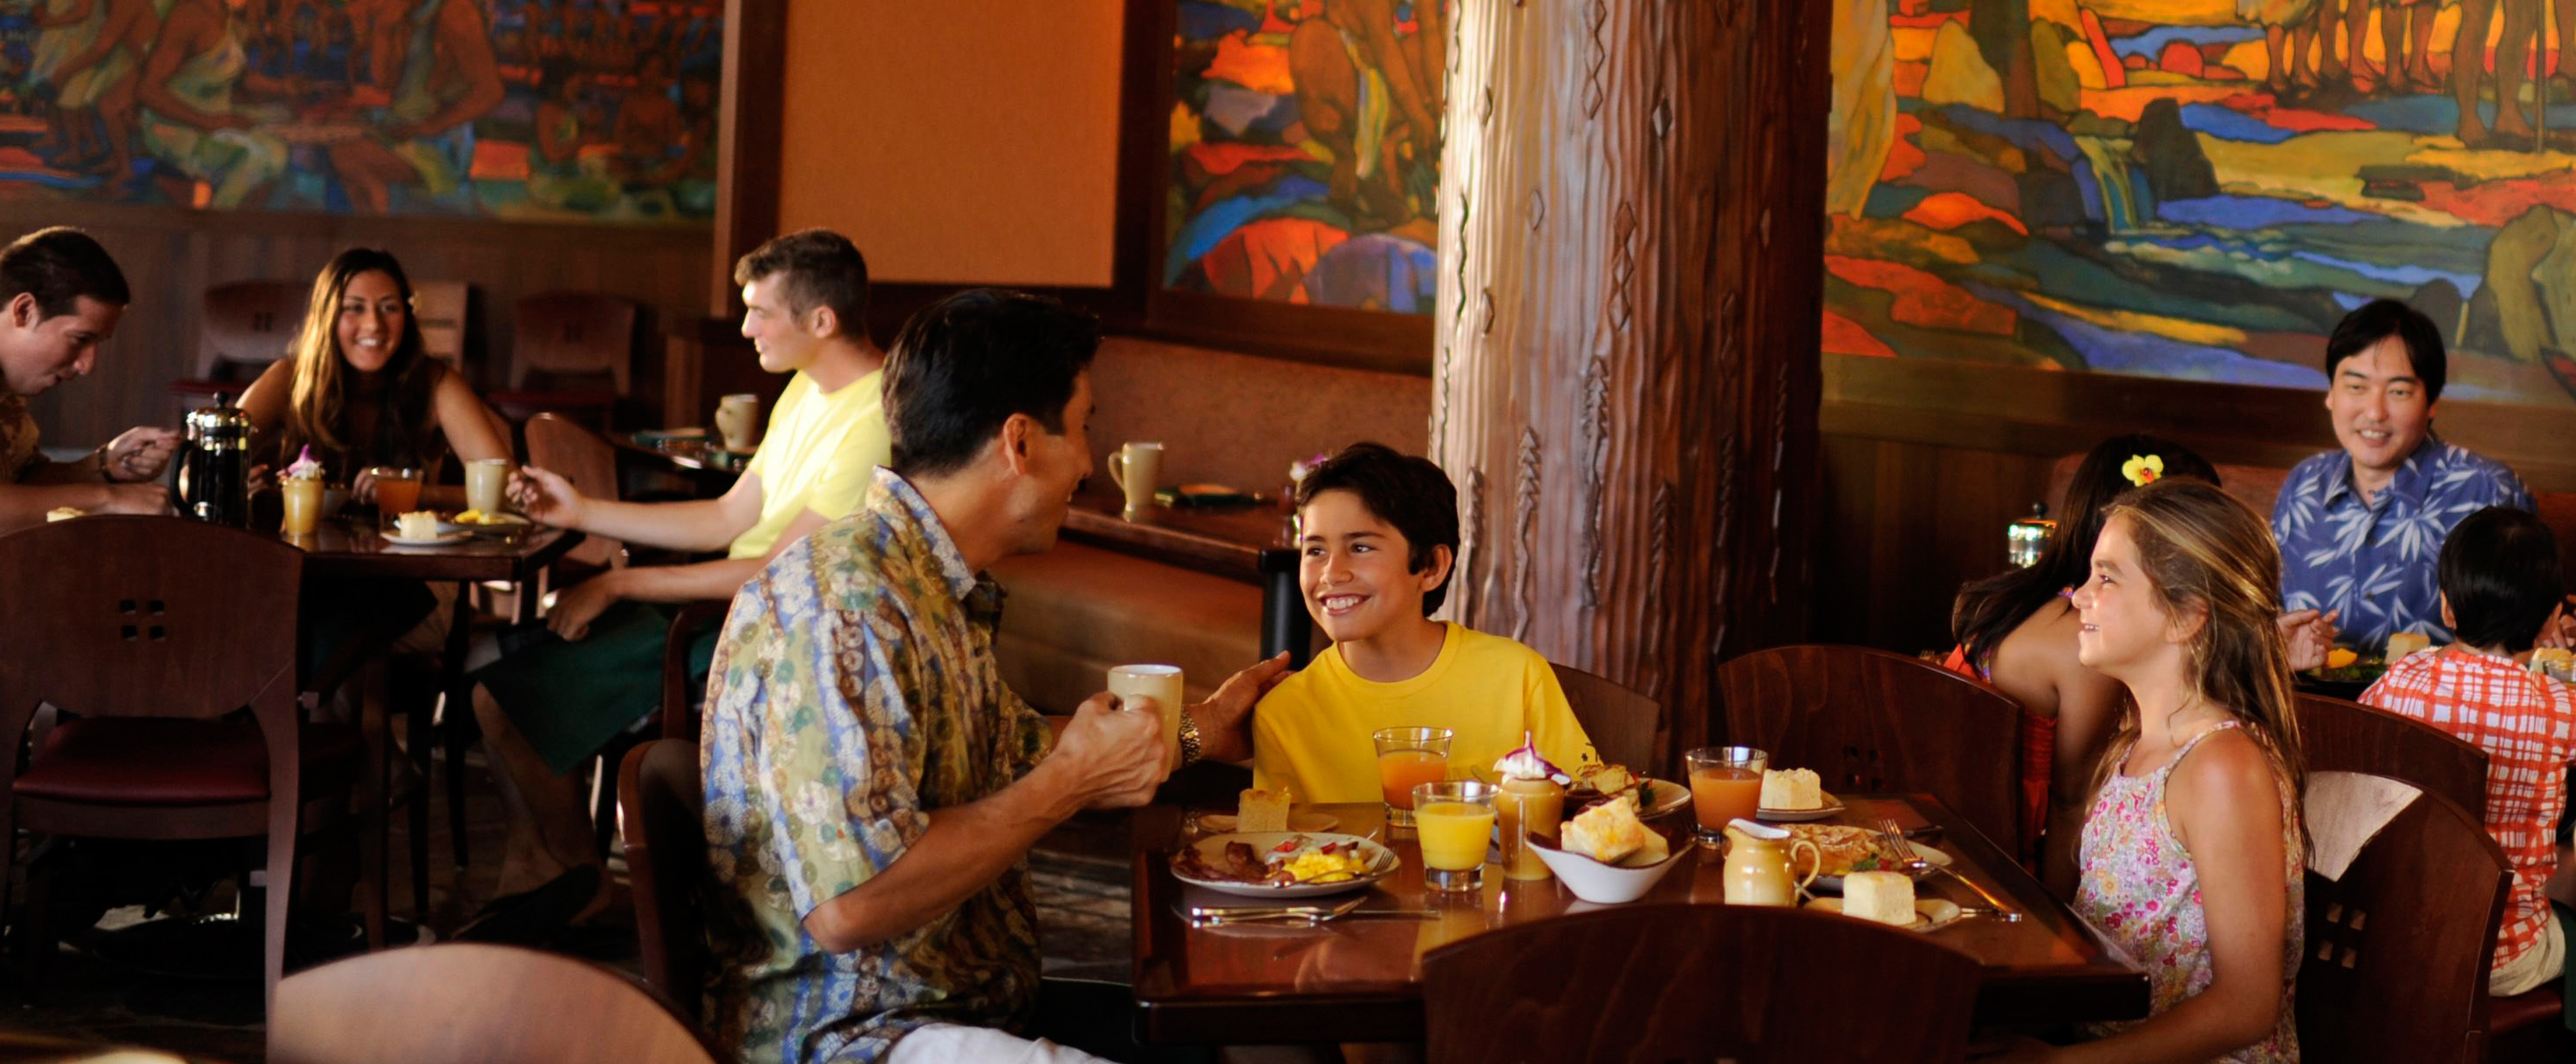 A father and son in an animated conversation at breakfast while a young daughter looks on